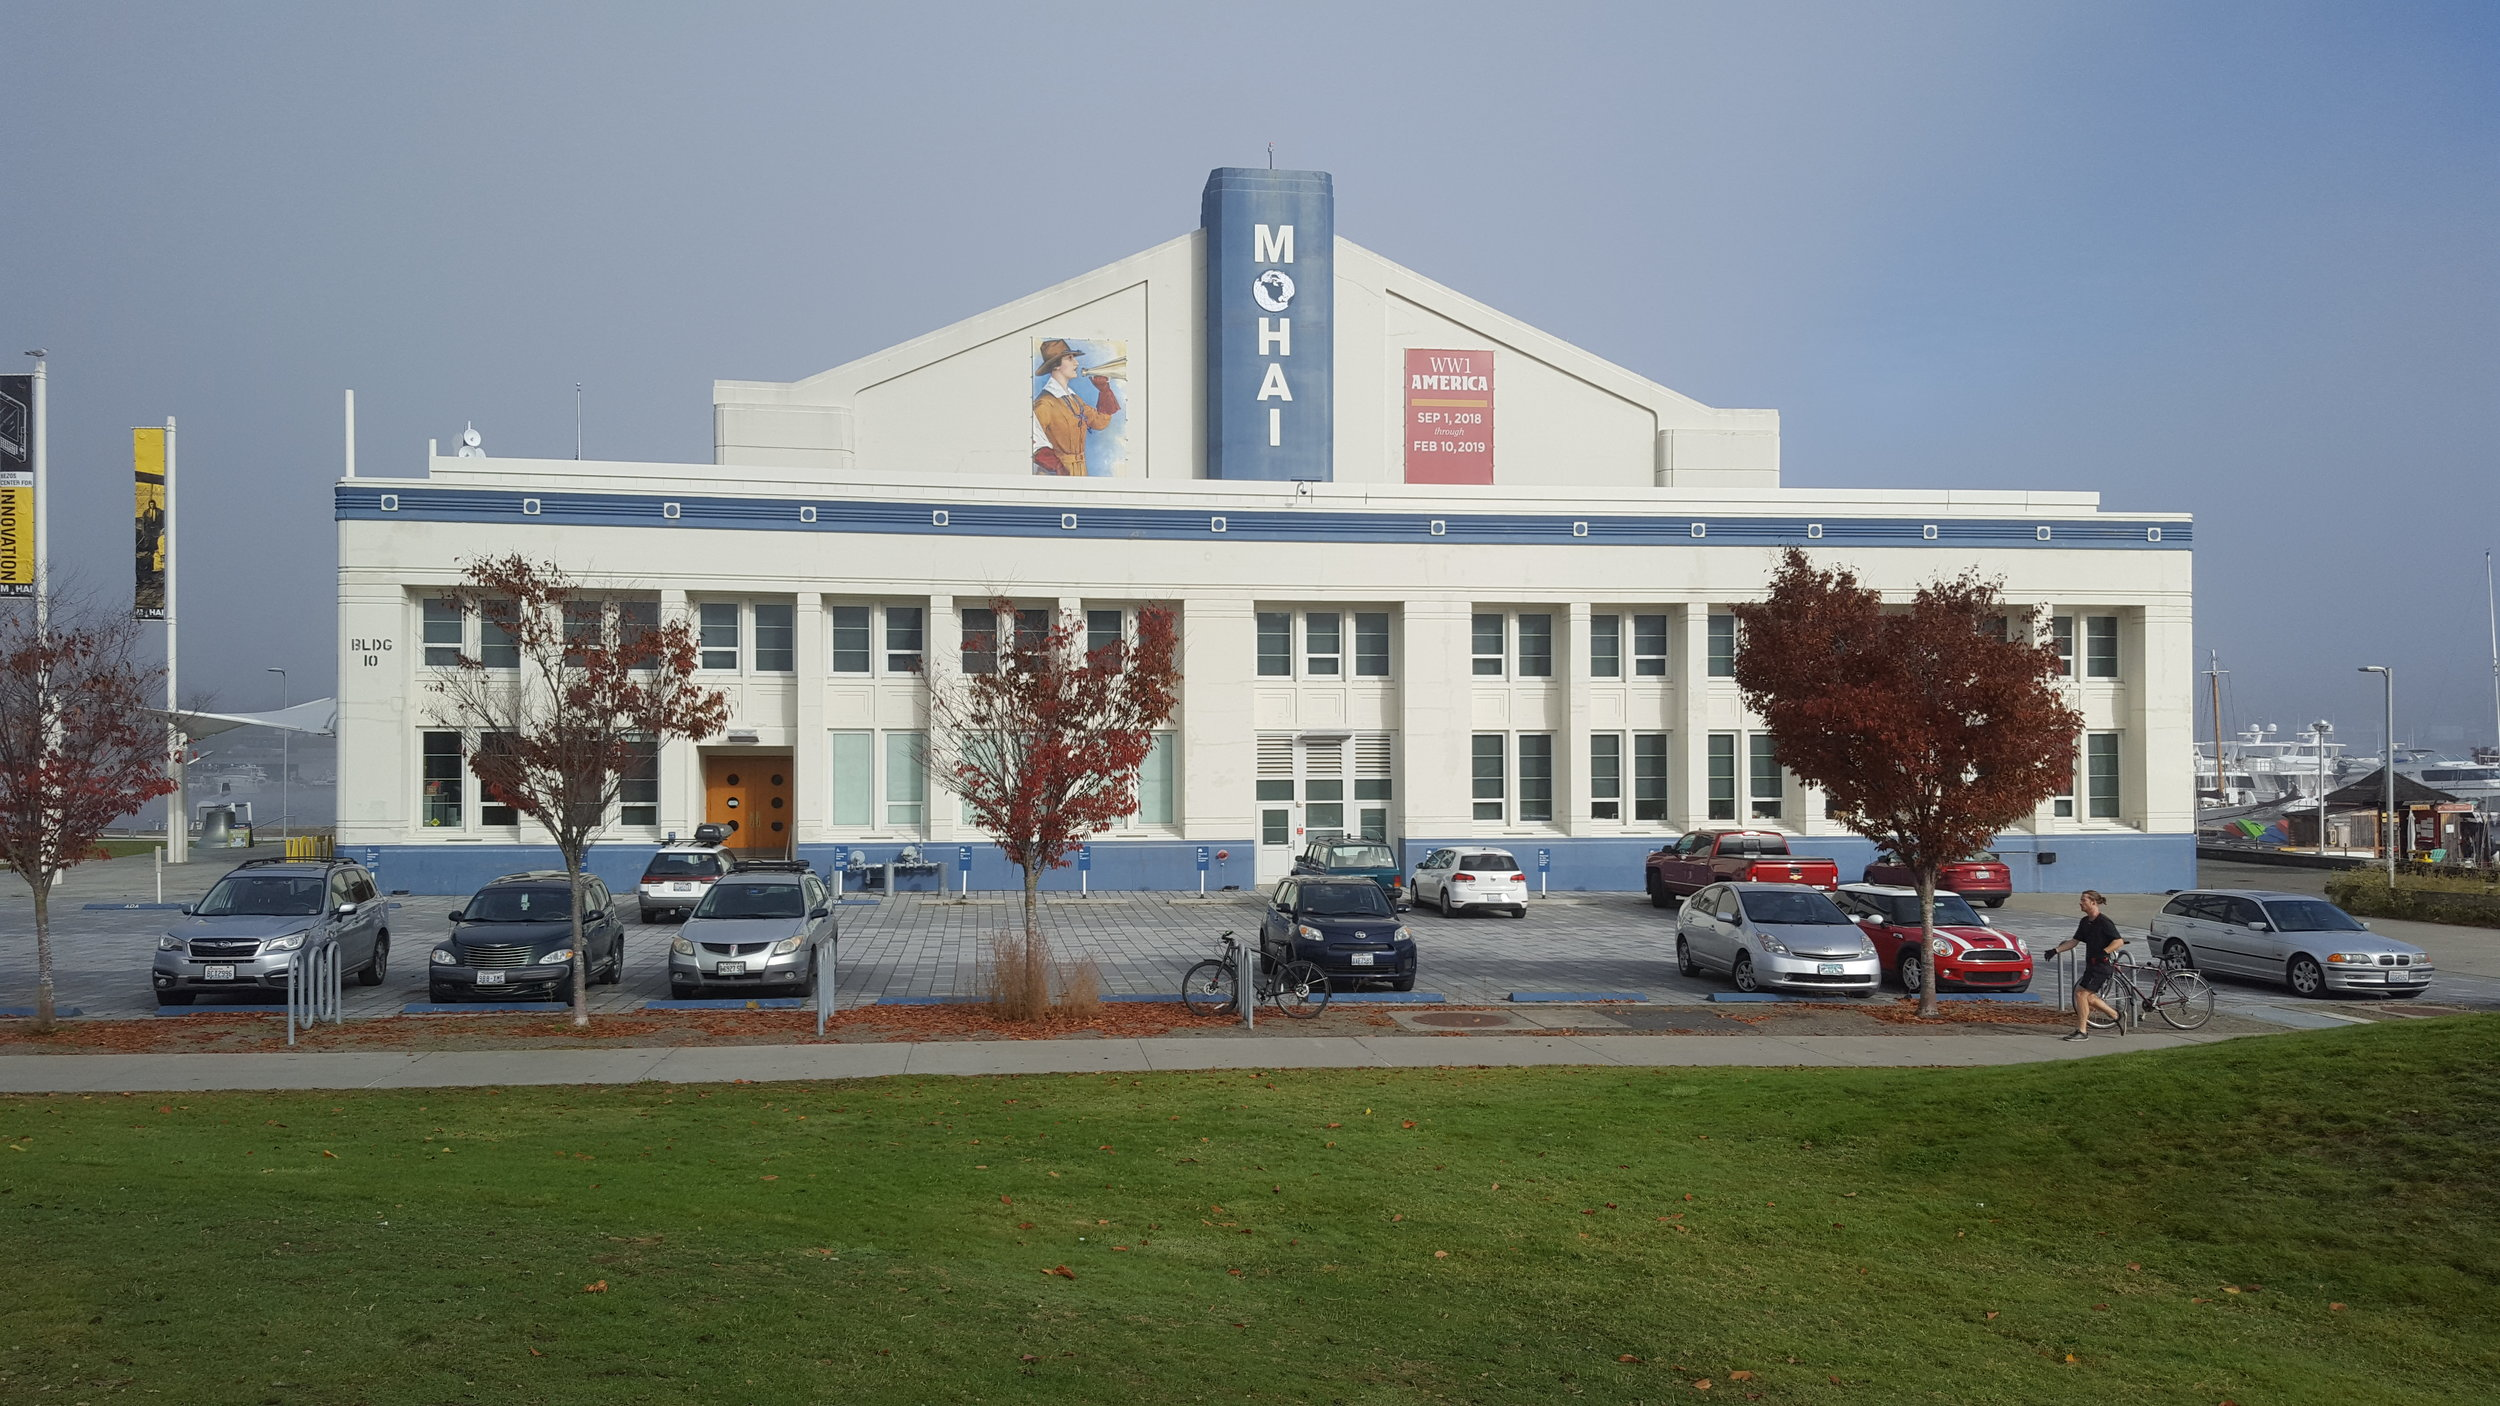 MOHAI - the Museum of History and Industry is located in South Lake Union - Seattle, WA.